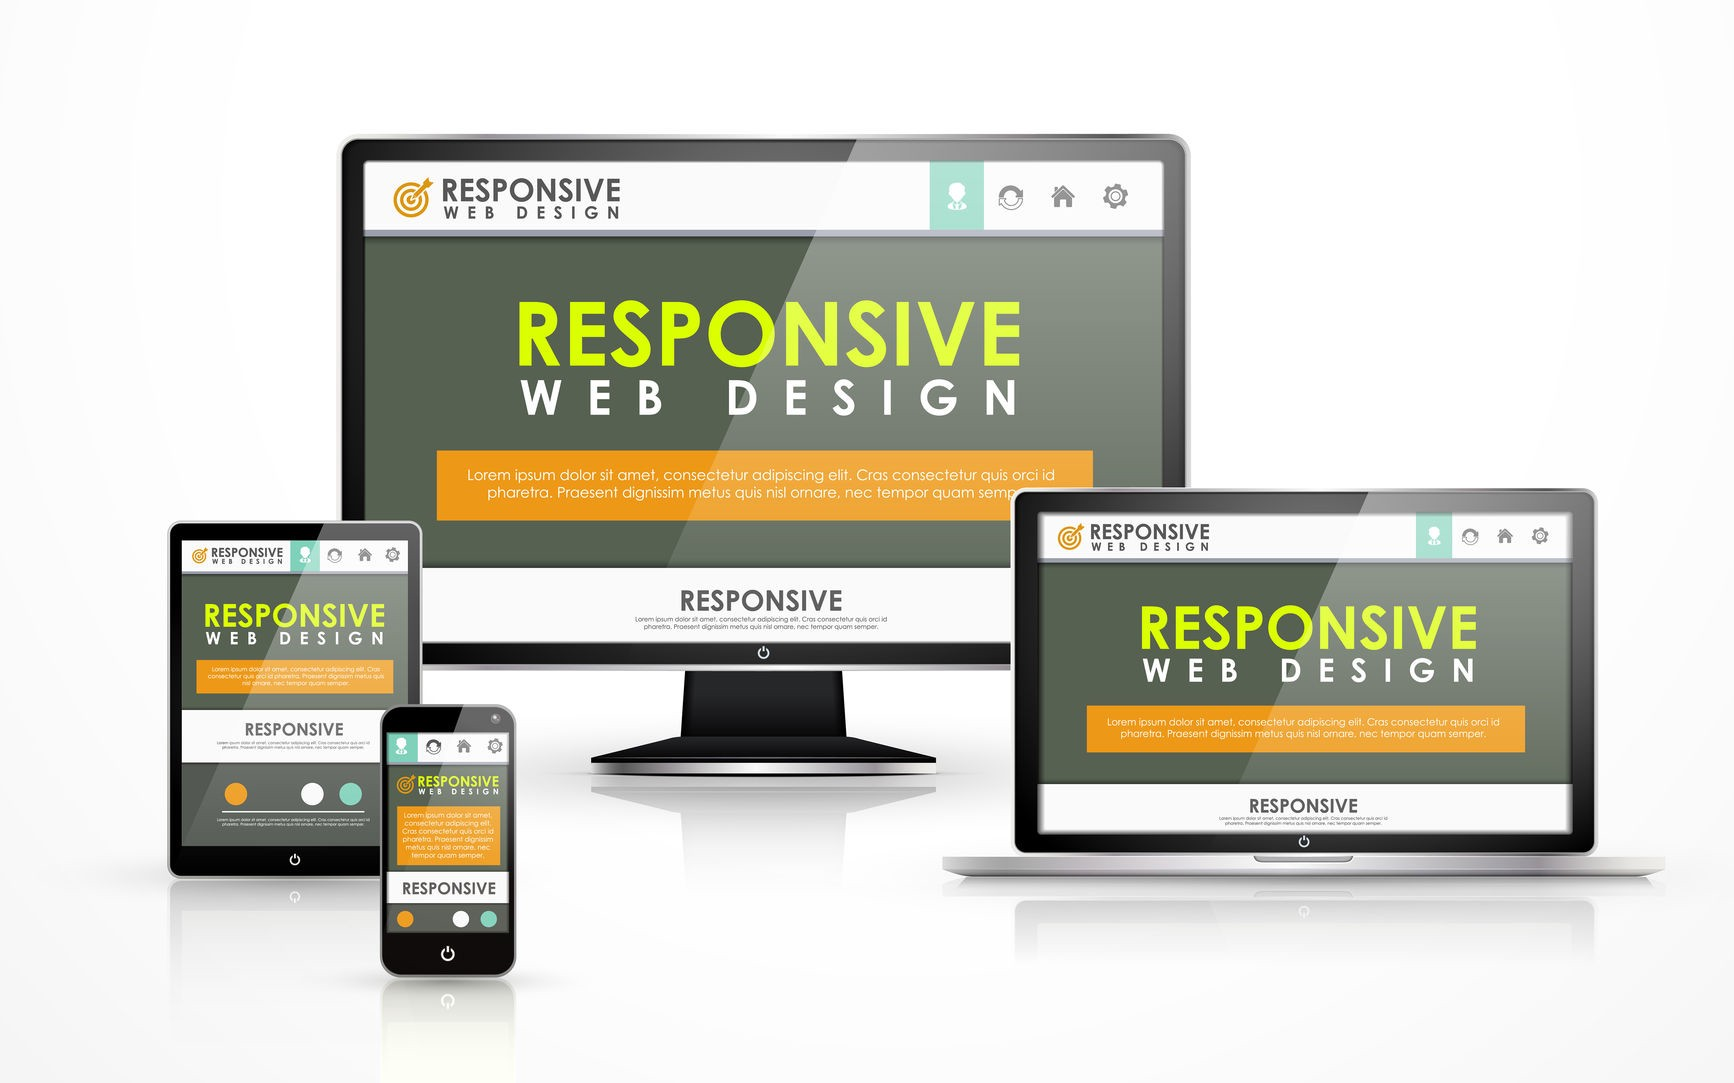 10 Great Benefits of Responsive Web Design